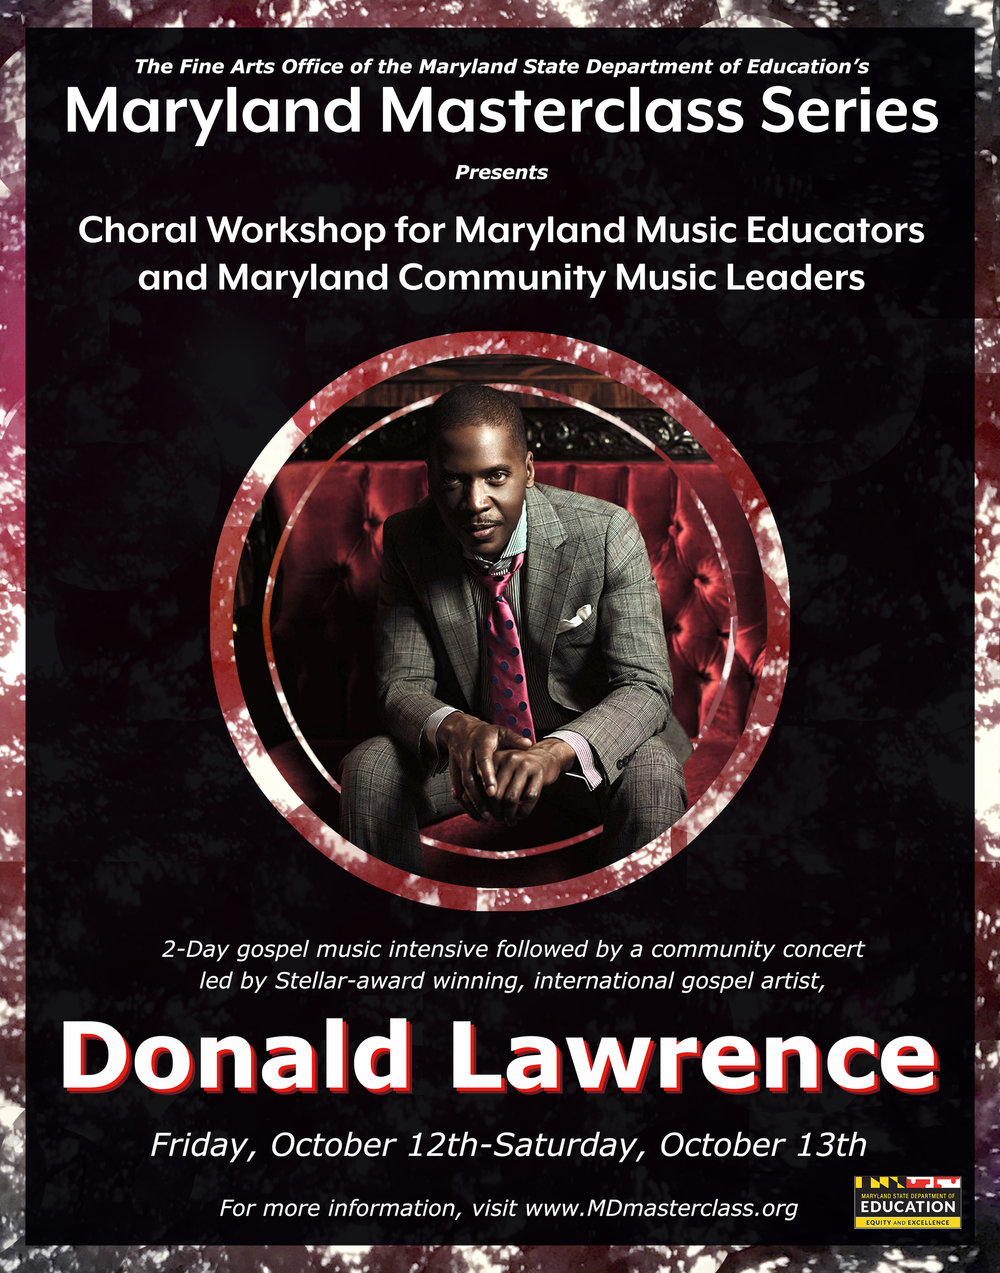 Donald Lawrence Announcement.jpg